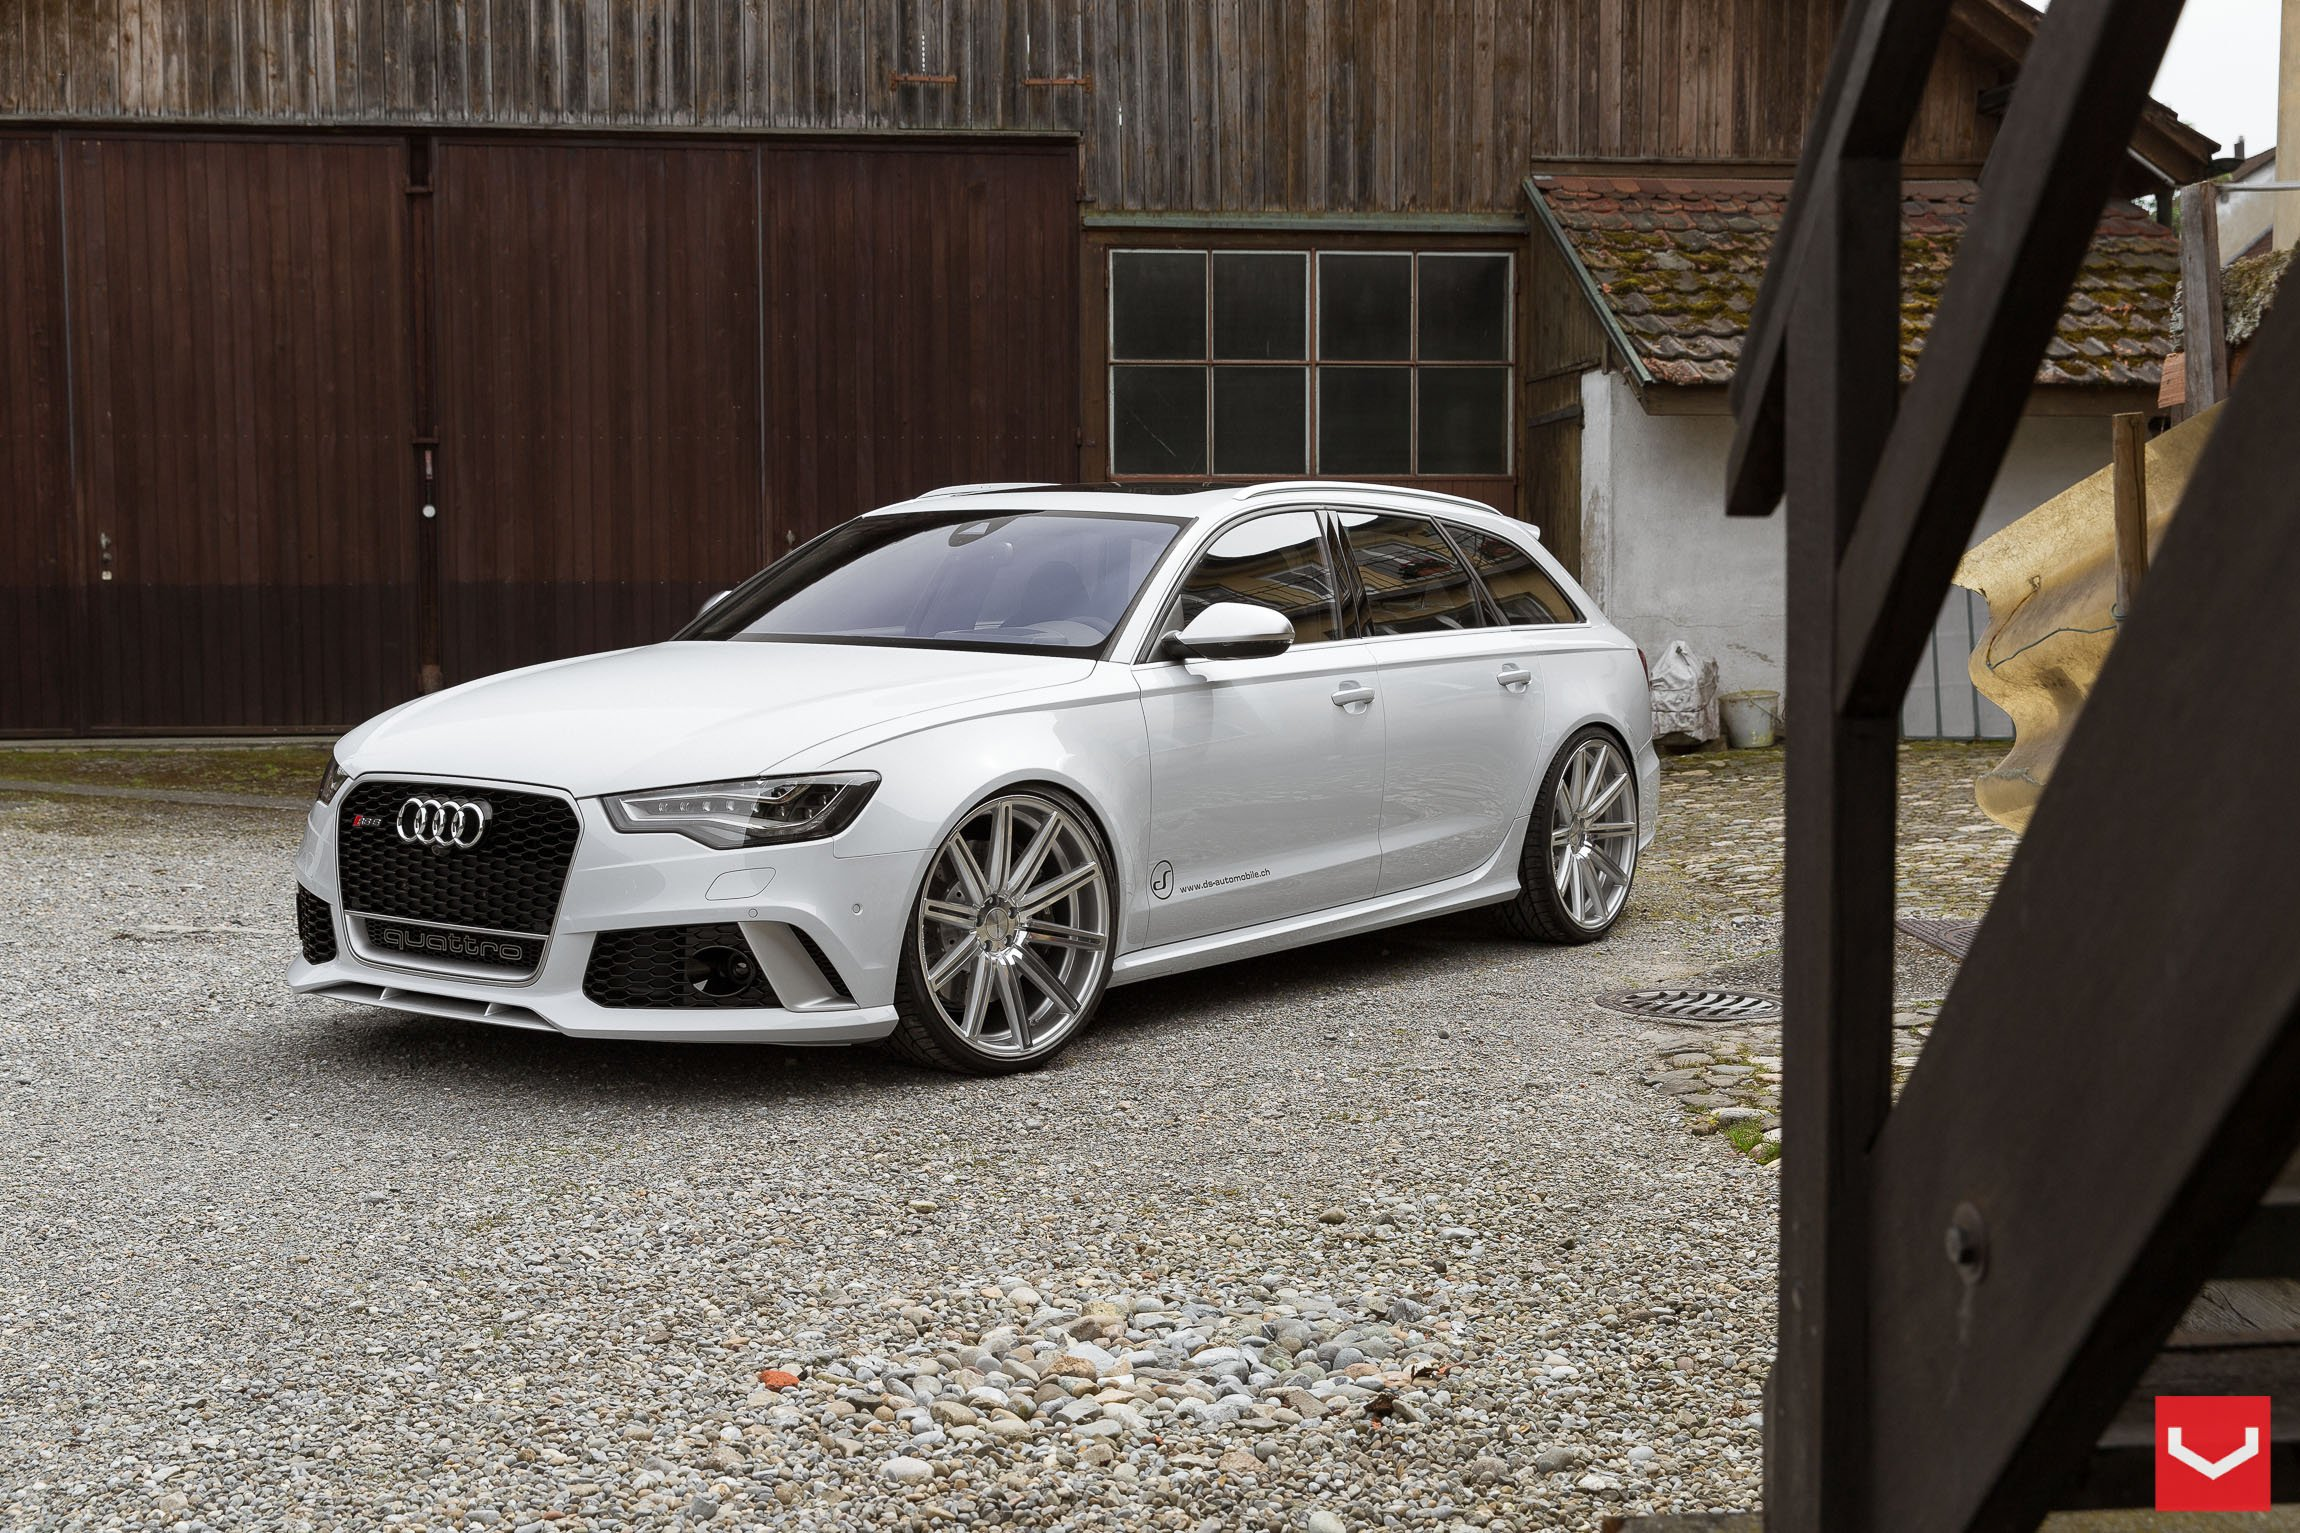 vossen wheels tuning audi rs6 wallpaper 2300x1533 483856 wallpaperup. Black Bedroom Furniture Sets. Home Design Ideas